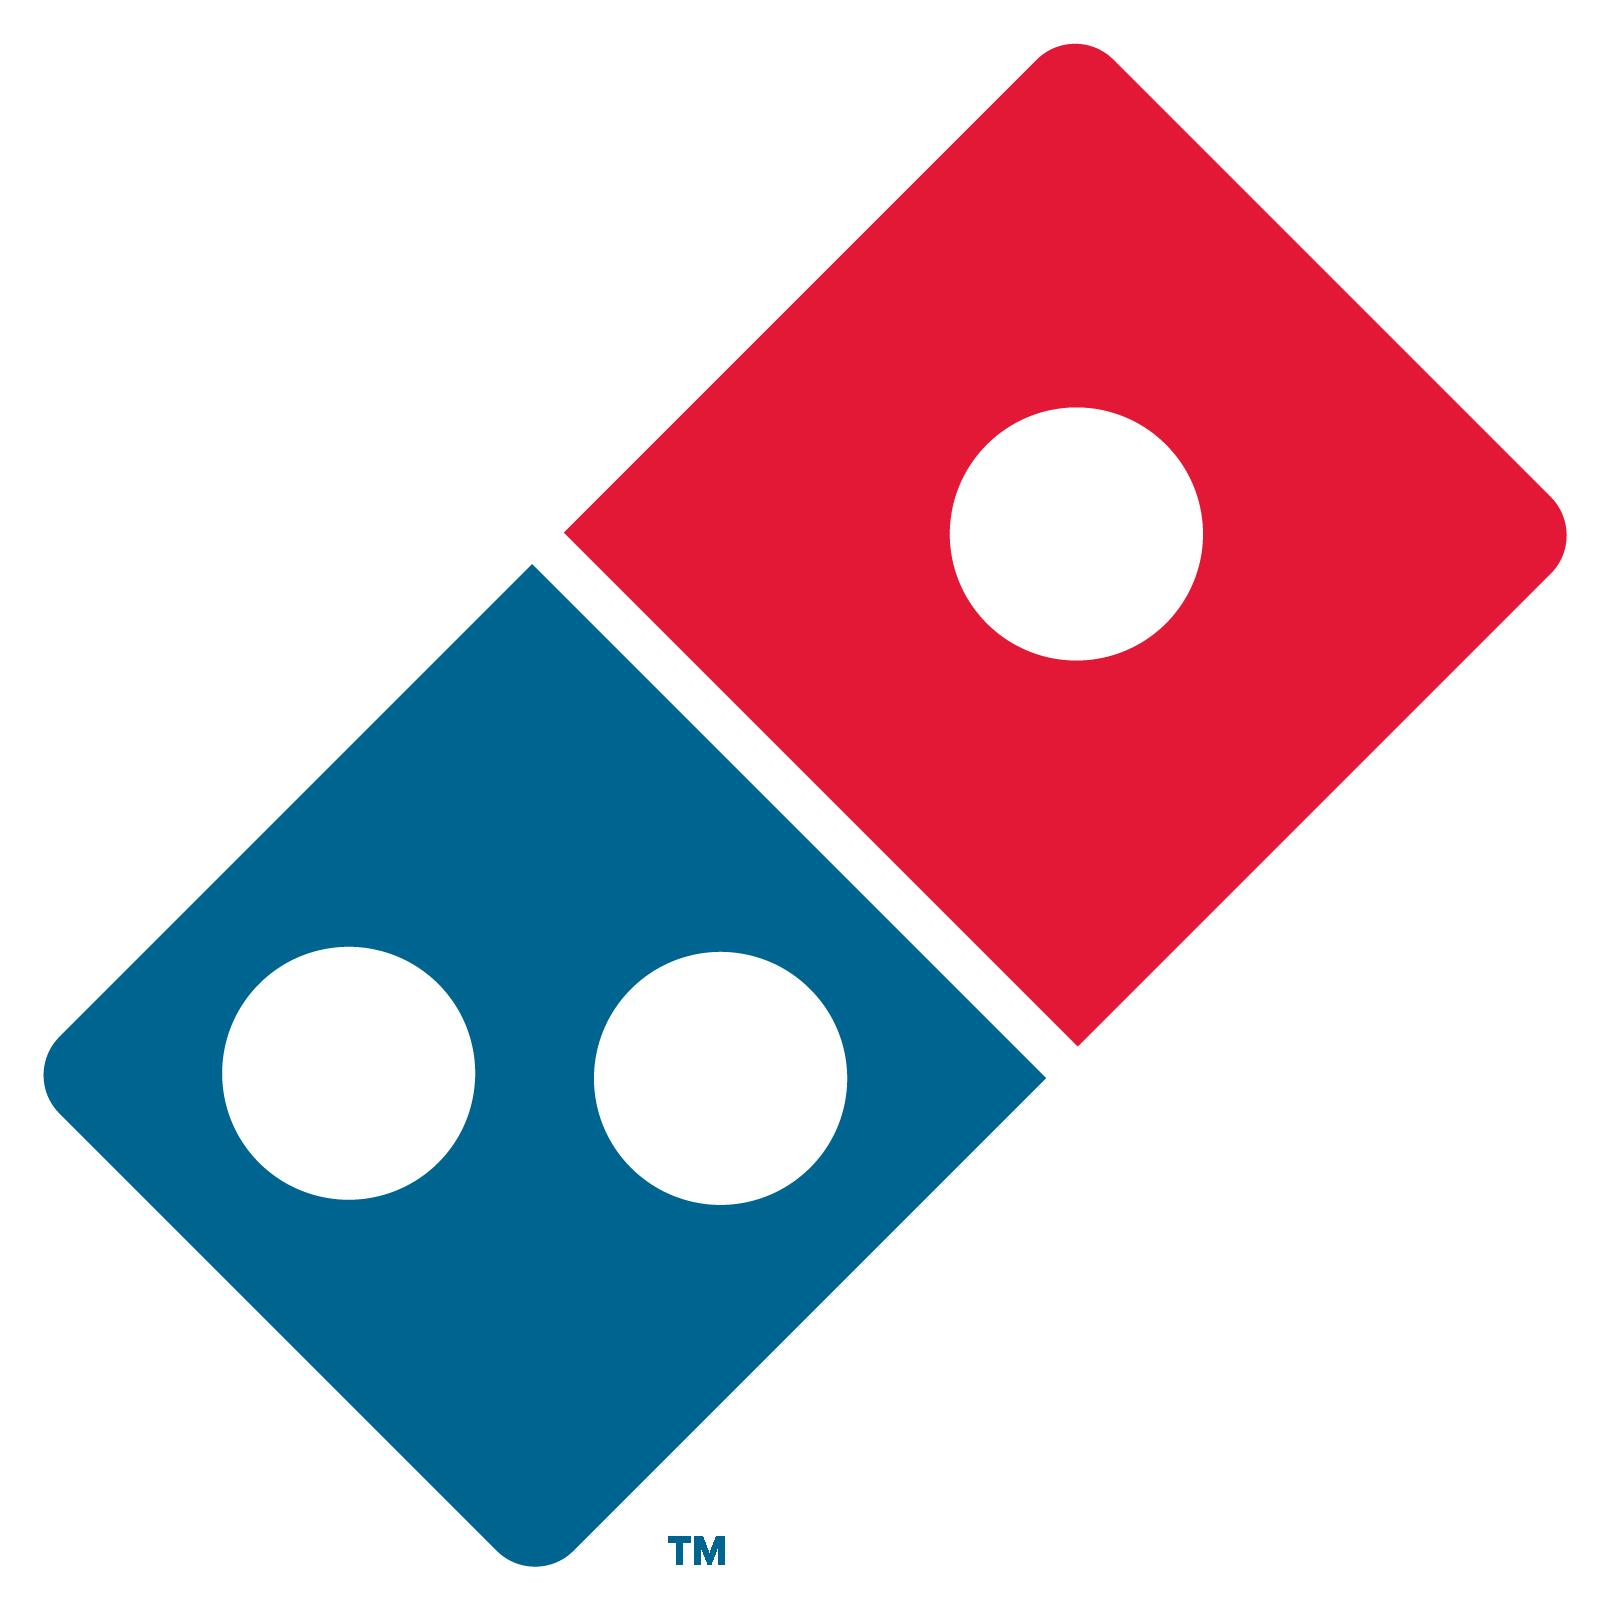 domino s pizza 2304 w shaw ave ste 101 fresno ca domino s pizza domino s pizza 2304 w shaw ave ste 101 fresno ca domino s pizza mapquest